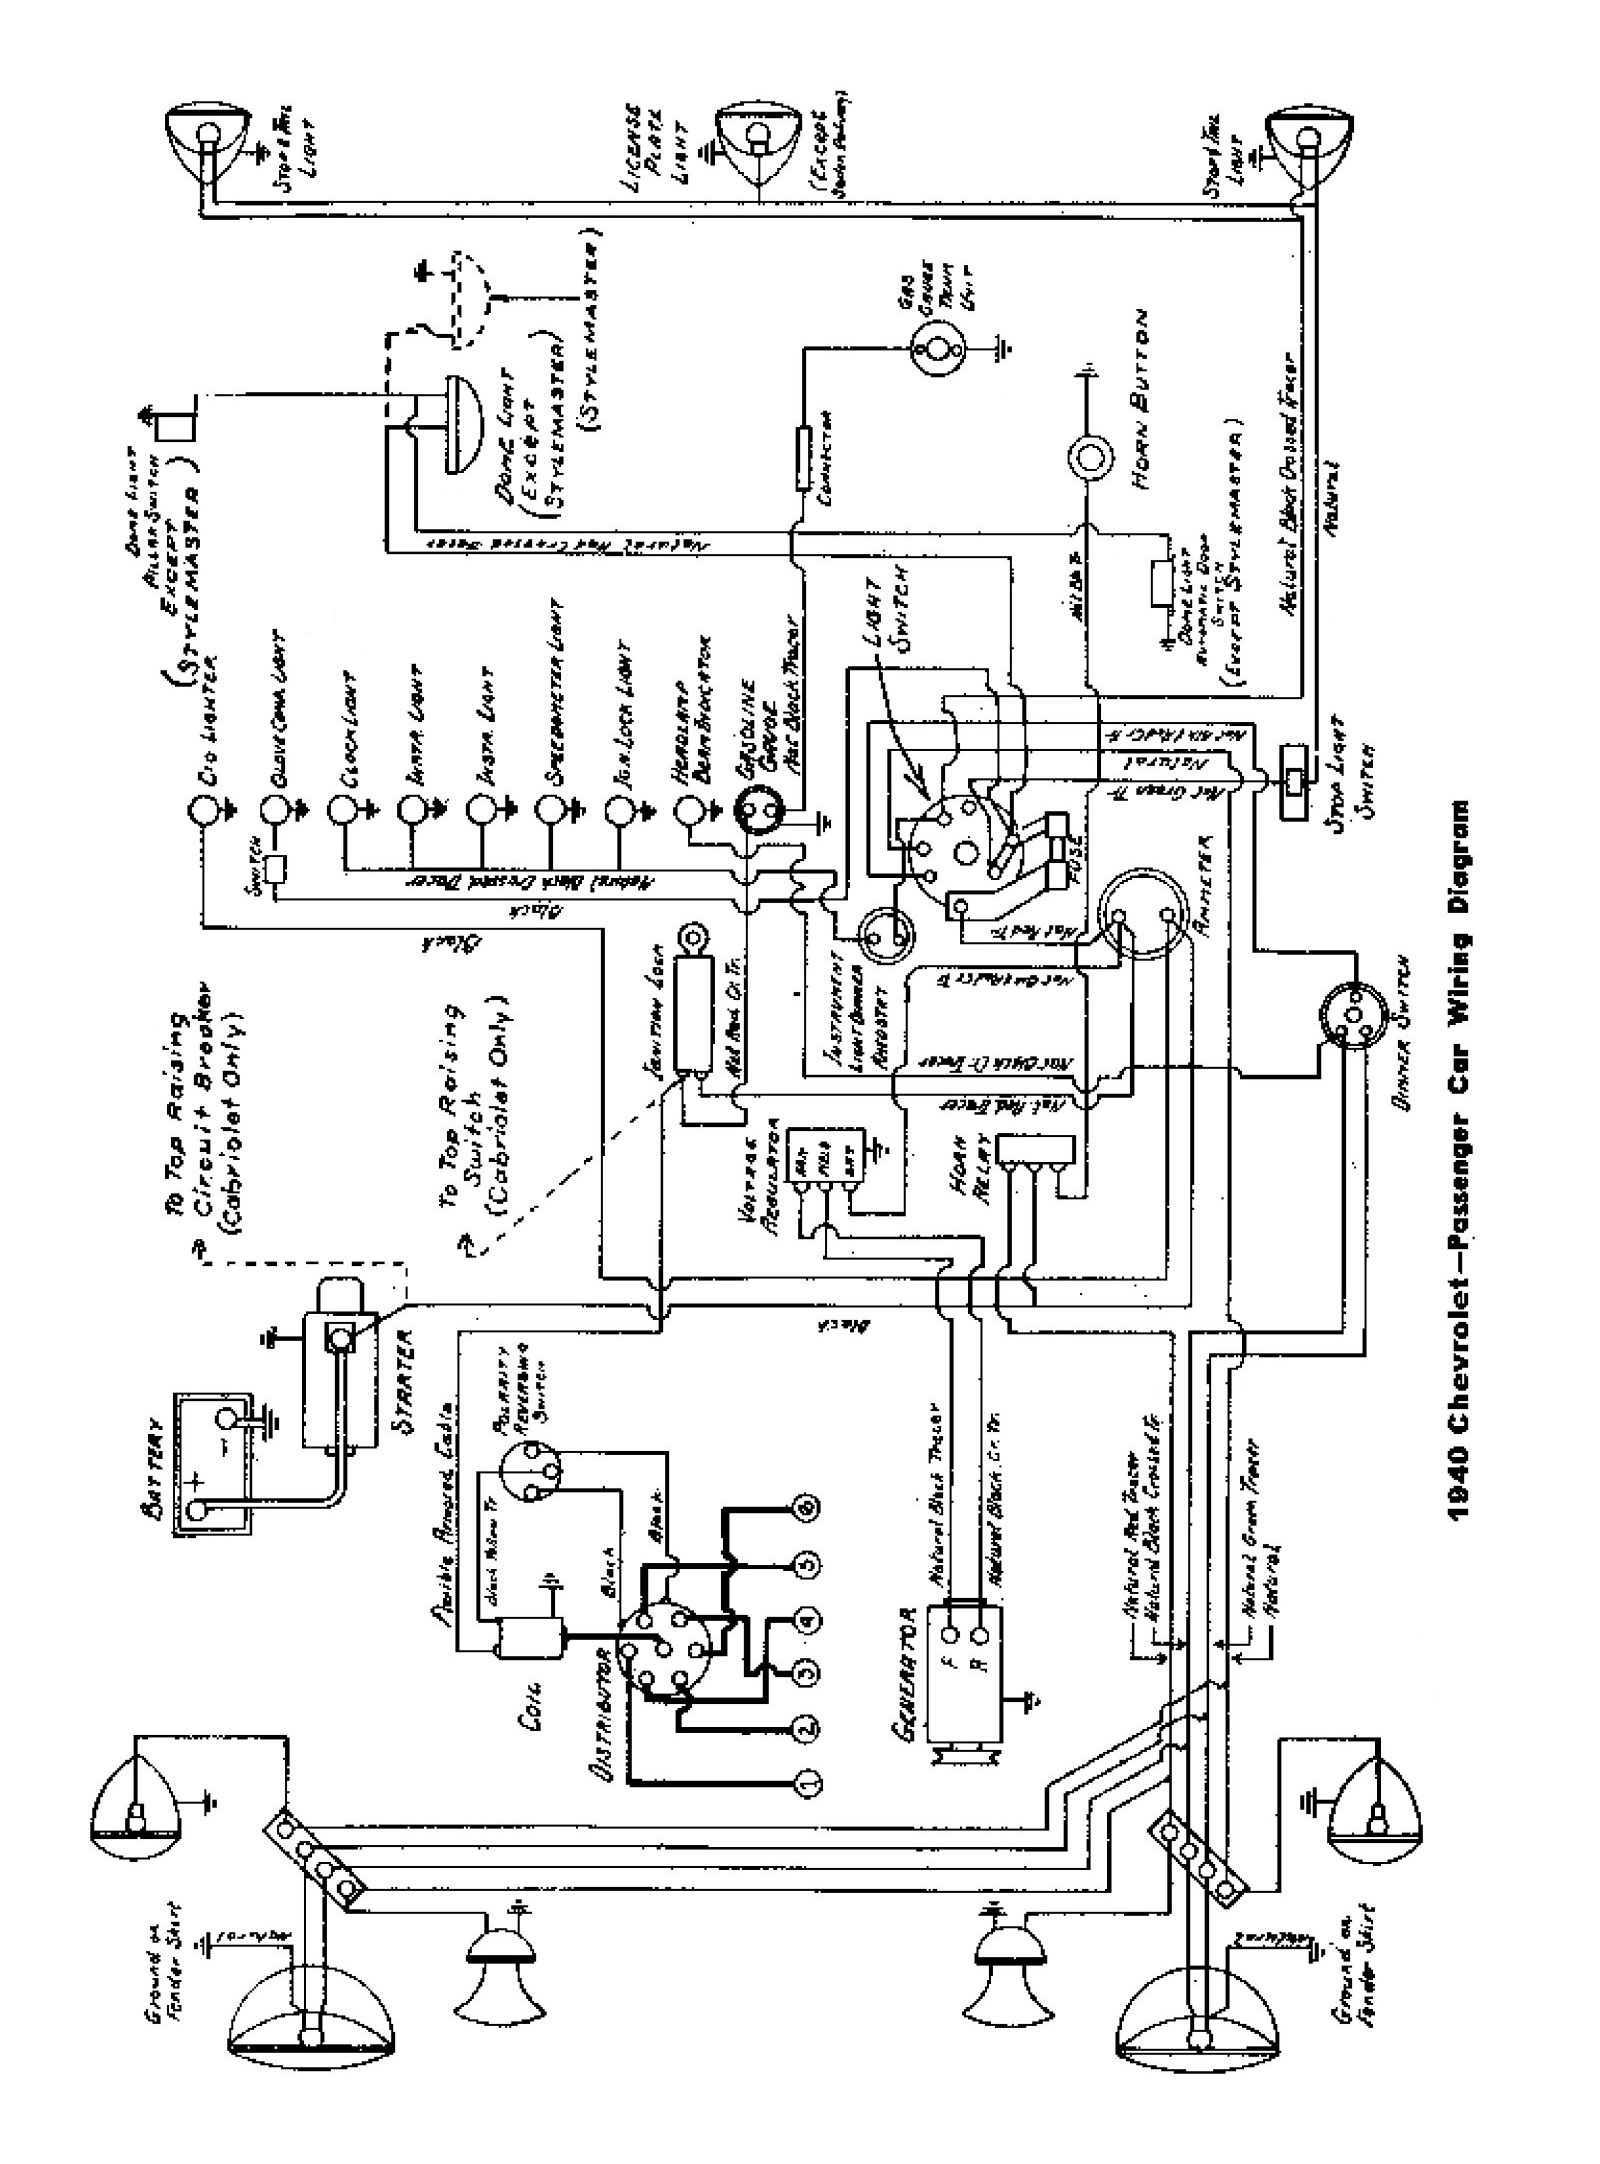 1940 Ford Powered Chevy Wiring Diagram on 1940 buick starter wiring diagram